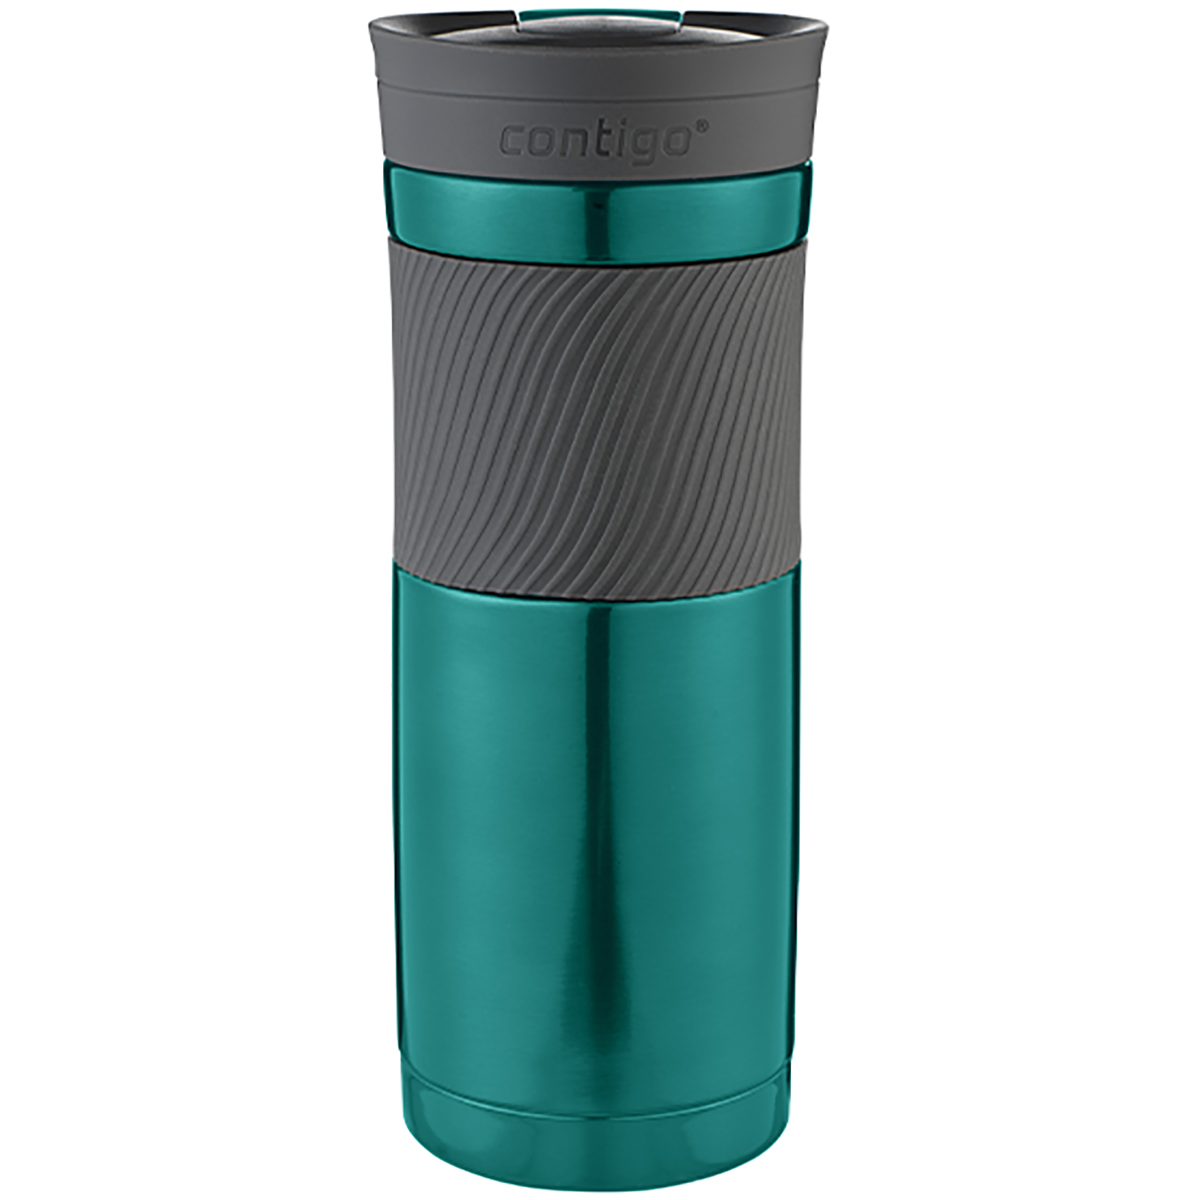 Contigo-20-oz-Byron-SnapSeal-Stainless-Steel-Insulated-Travel-Mug